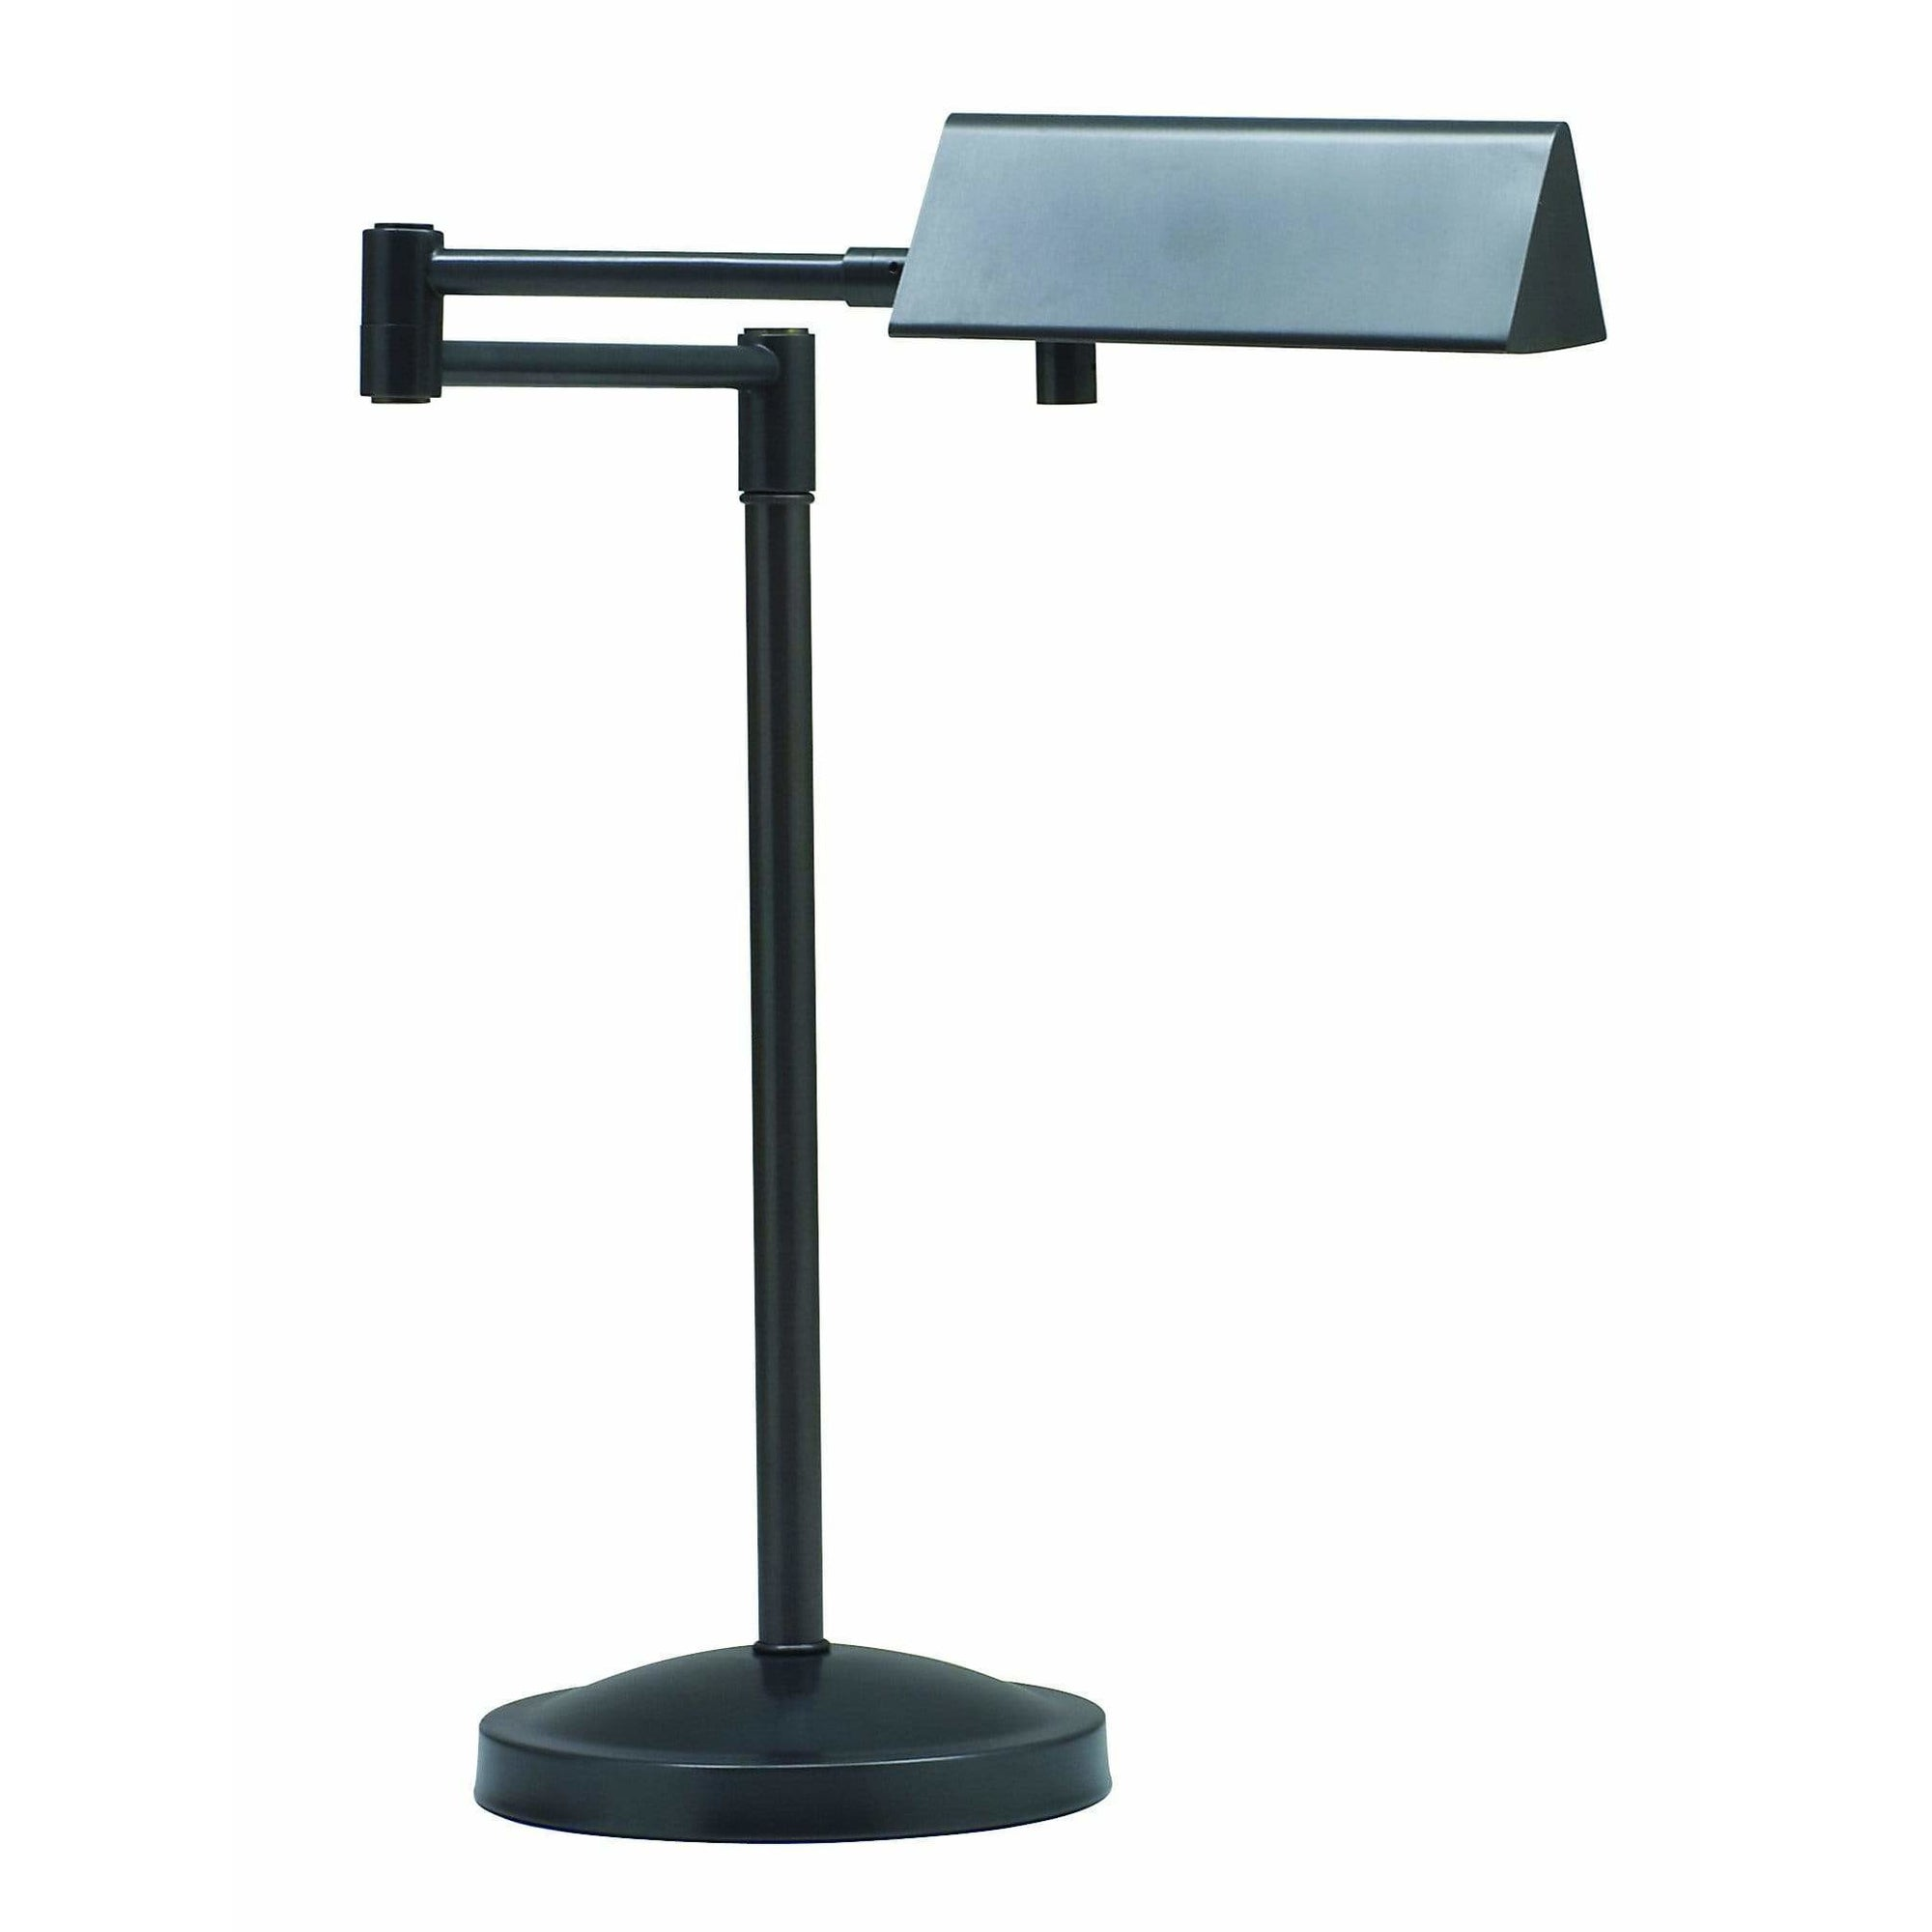 House Of Troy Table Lamps Pinnacle Halogen Swing Arm Desk Lamp by House Of Troy PIN450-OB